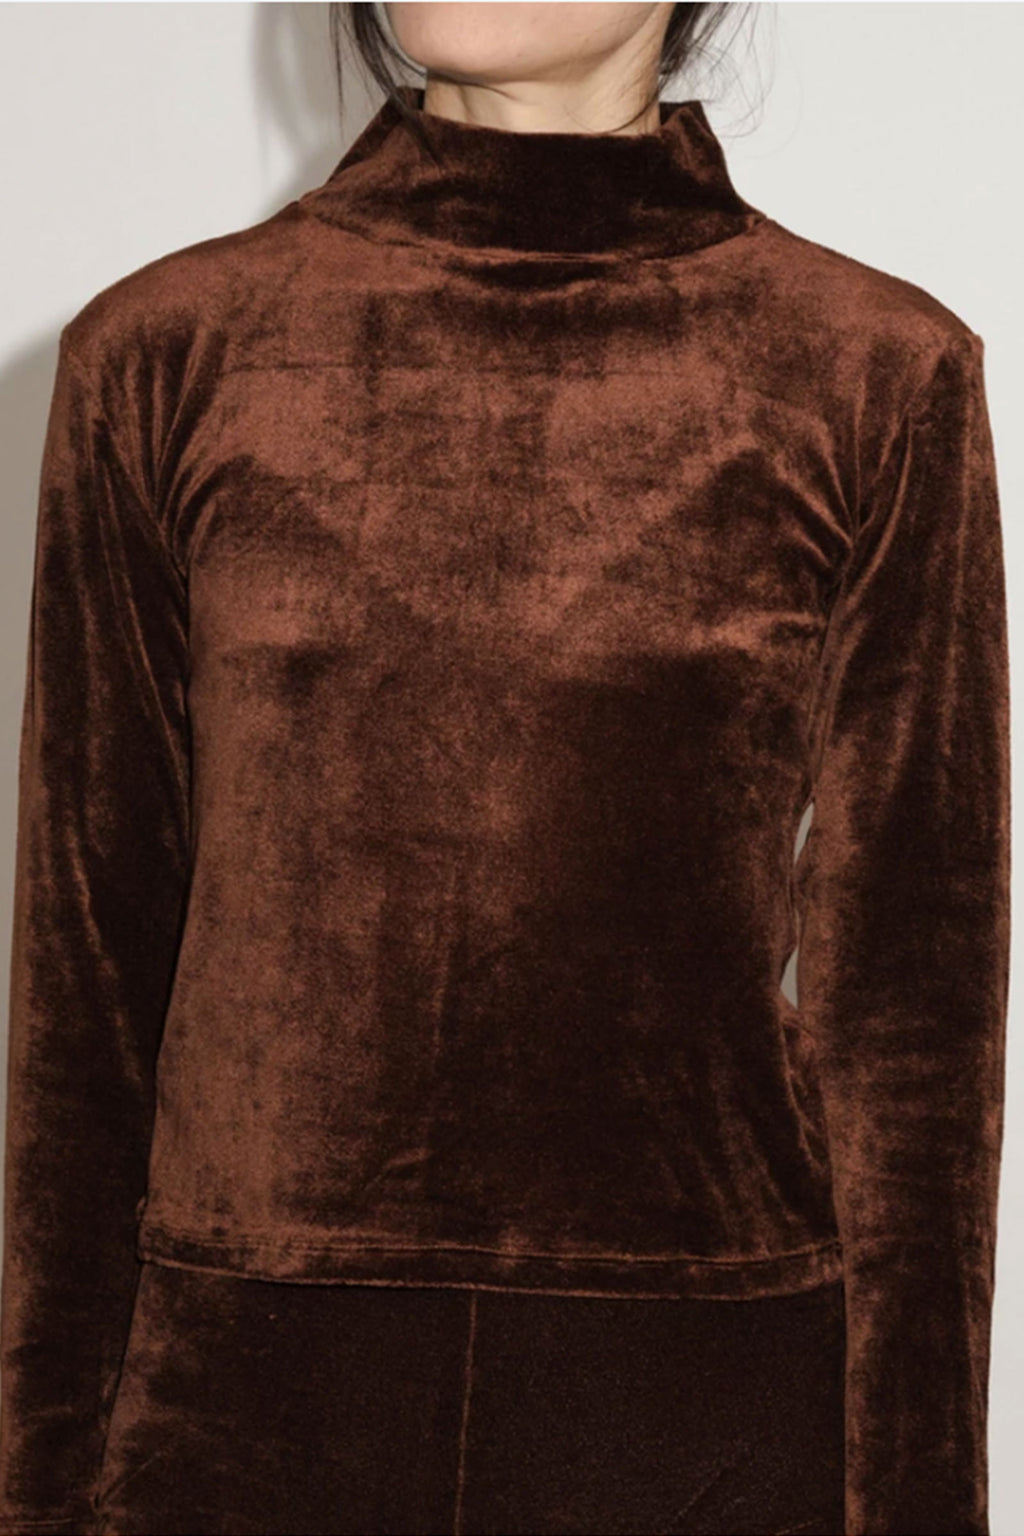 Base Range Dou Turtle Neck-Shiny Velour Sweater in Turnip Brown